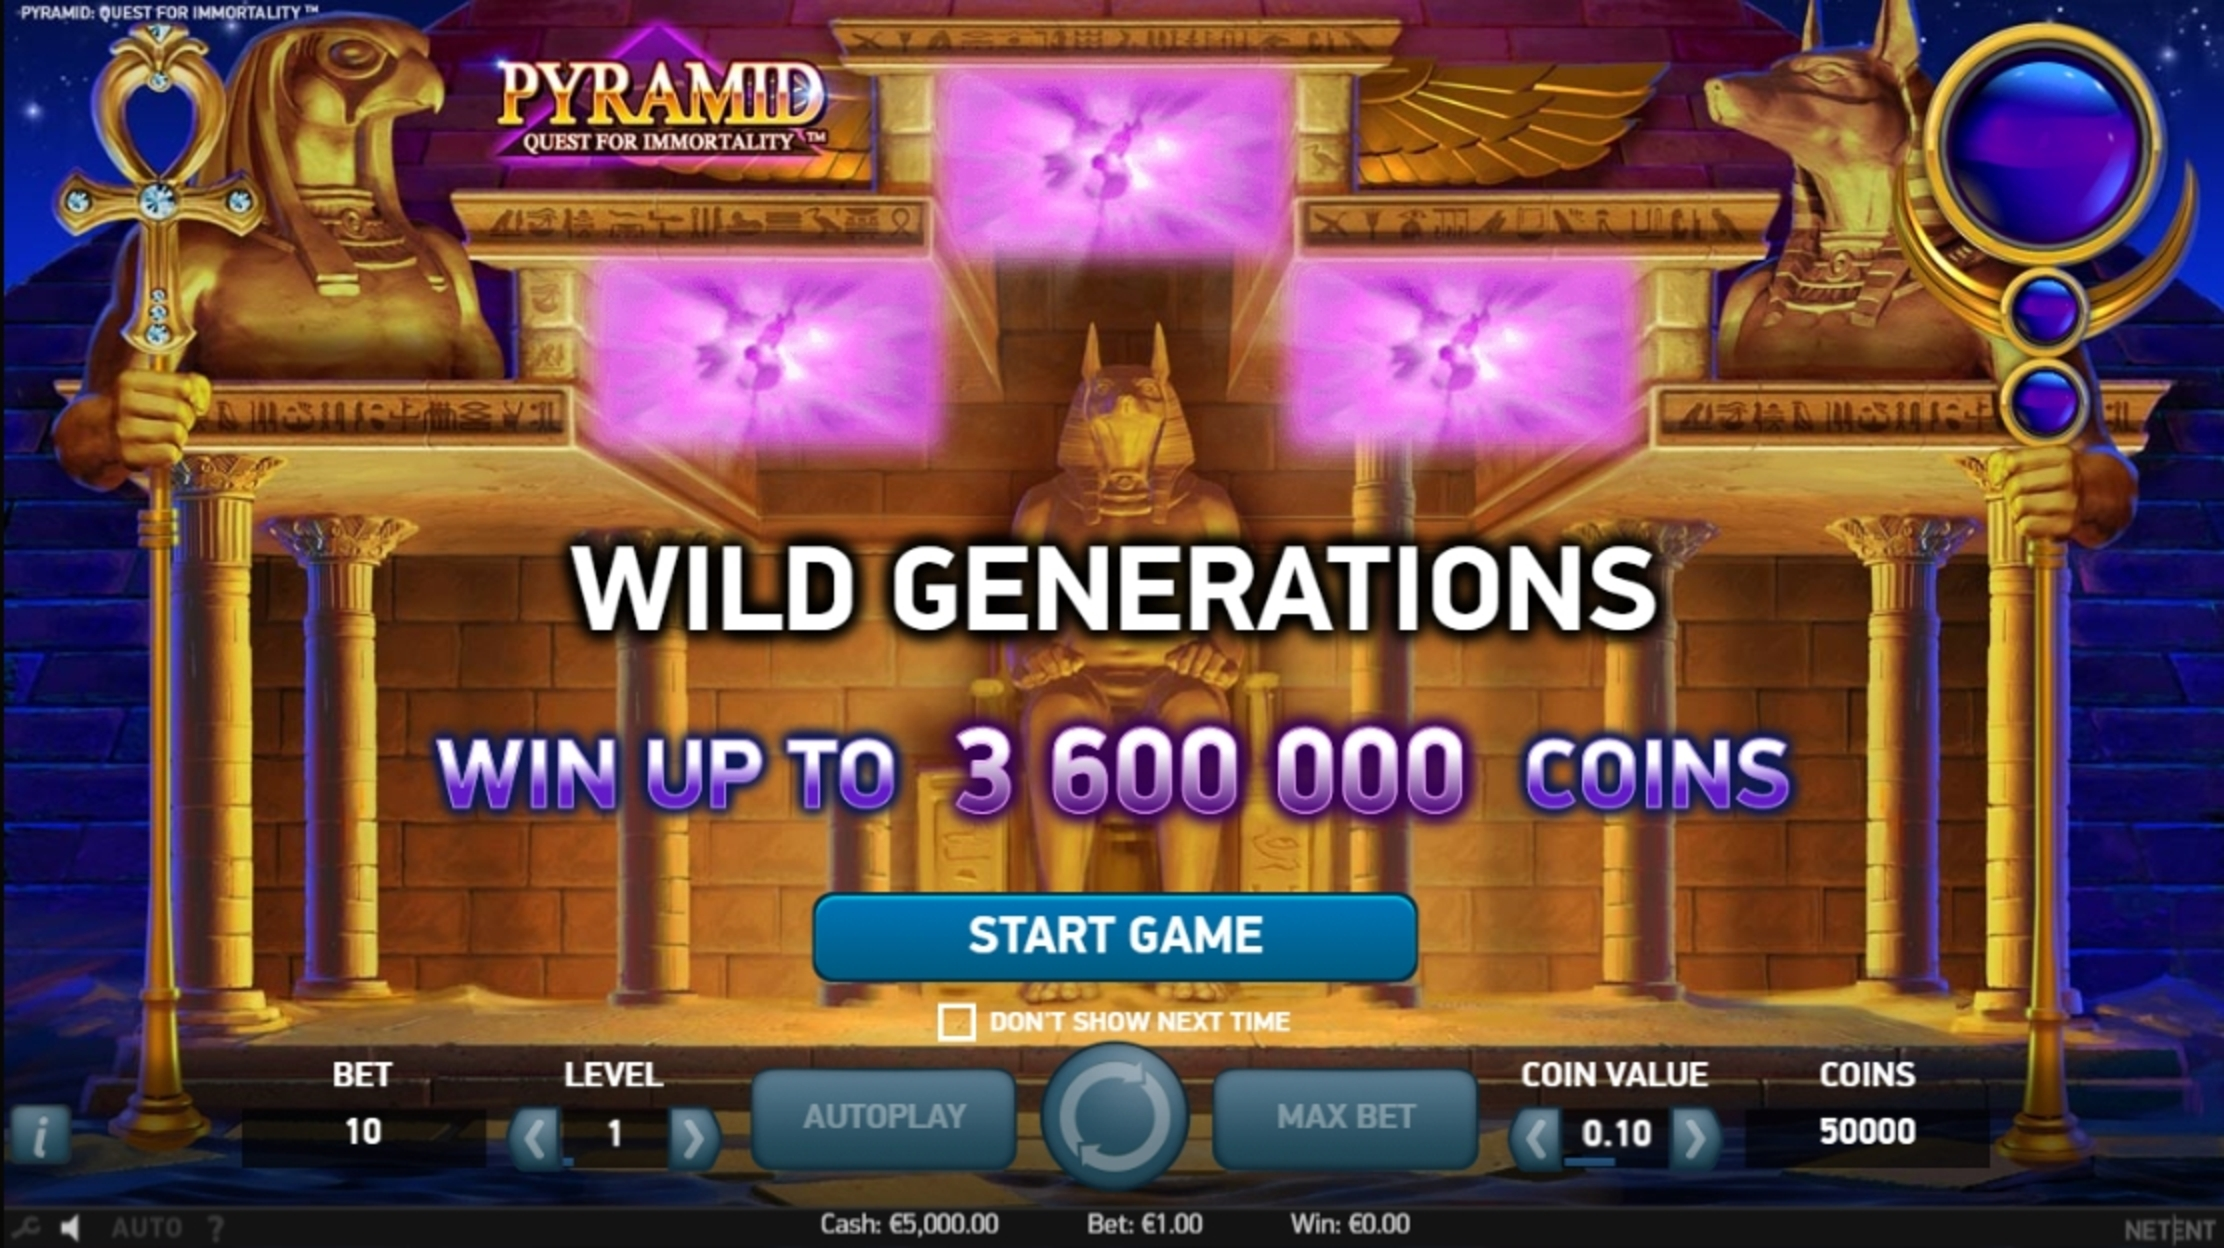 Play Pyramid: Quest for Immortality Free Casino Slot Game by NetEnt